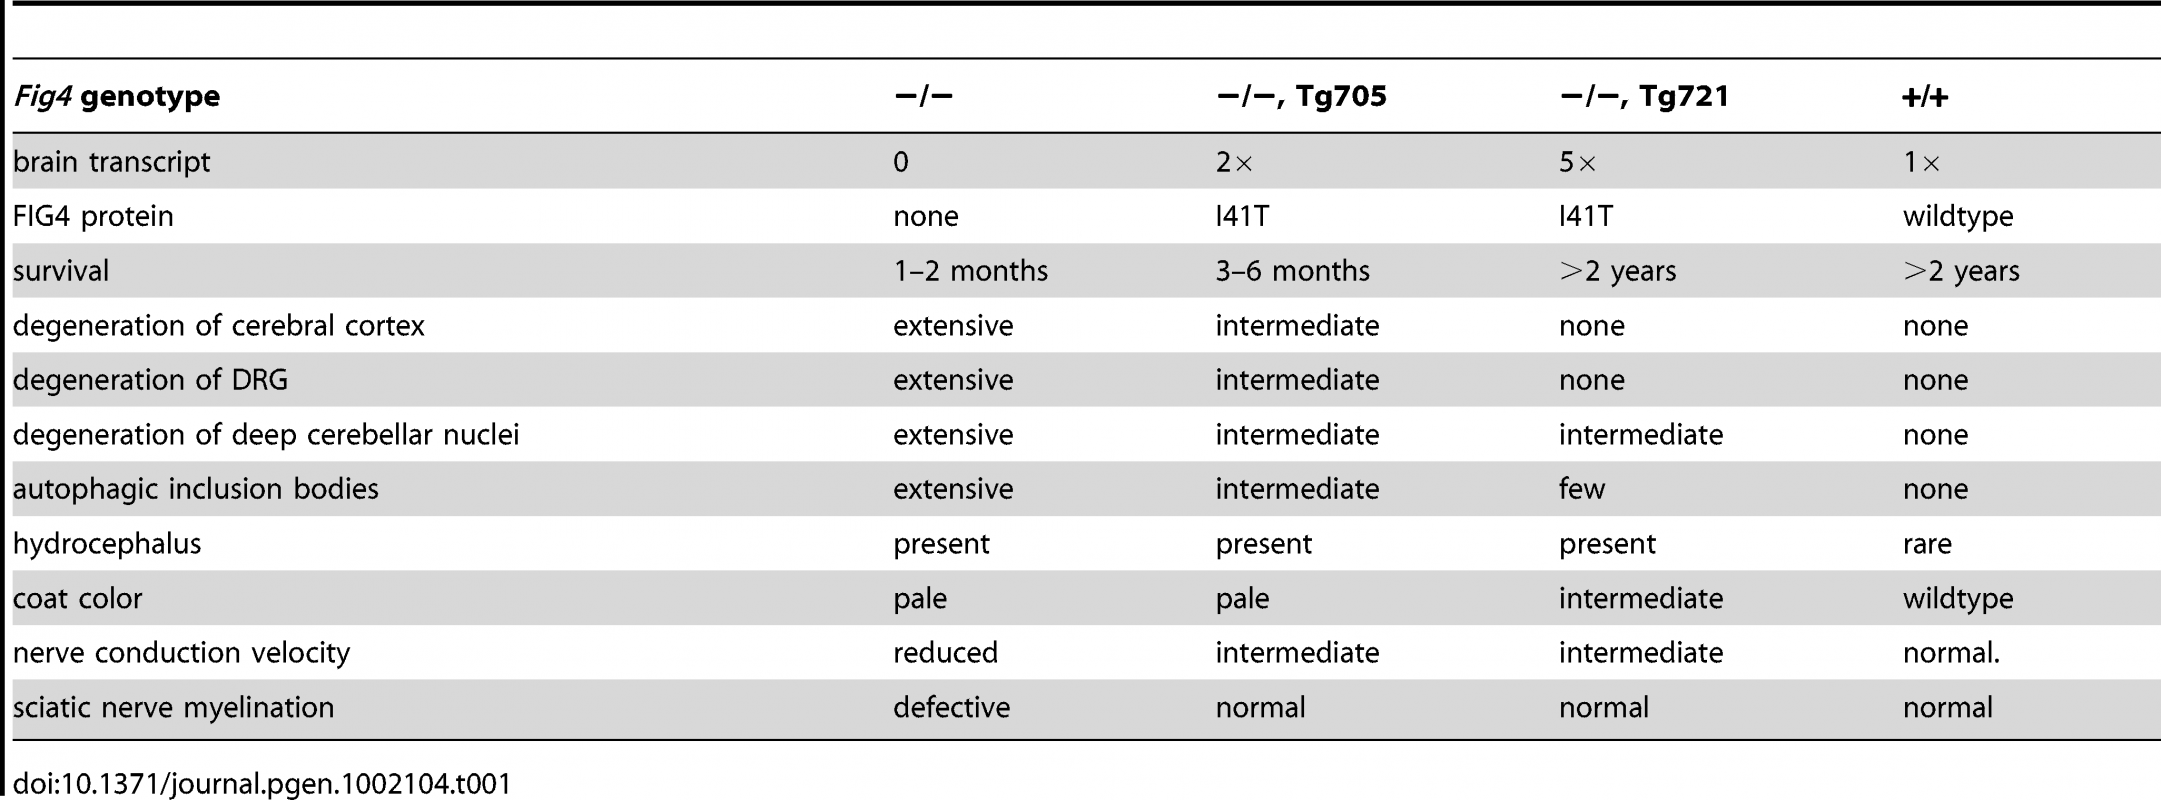 Rescue of various phenotypes of the <i>Fig4</i> null mice by the Tg705 and Tg721 I41T transgenes.